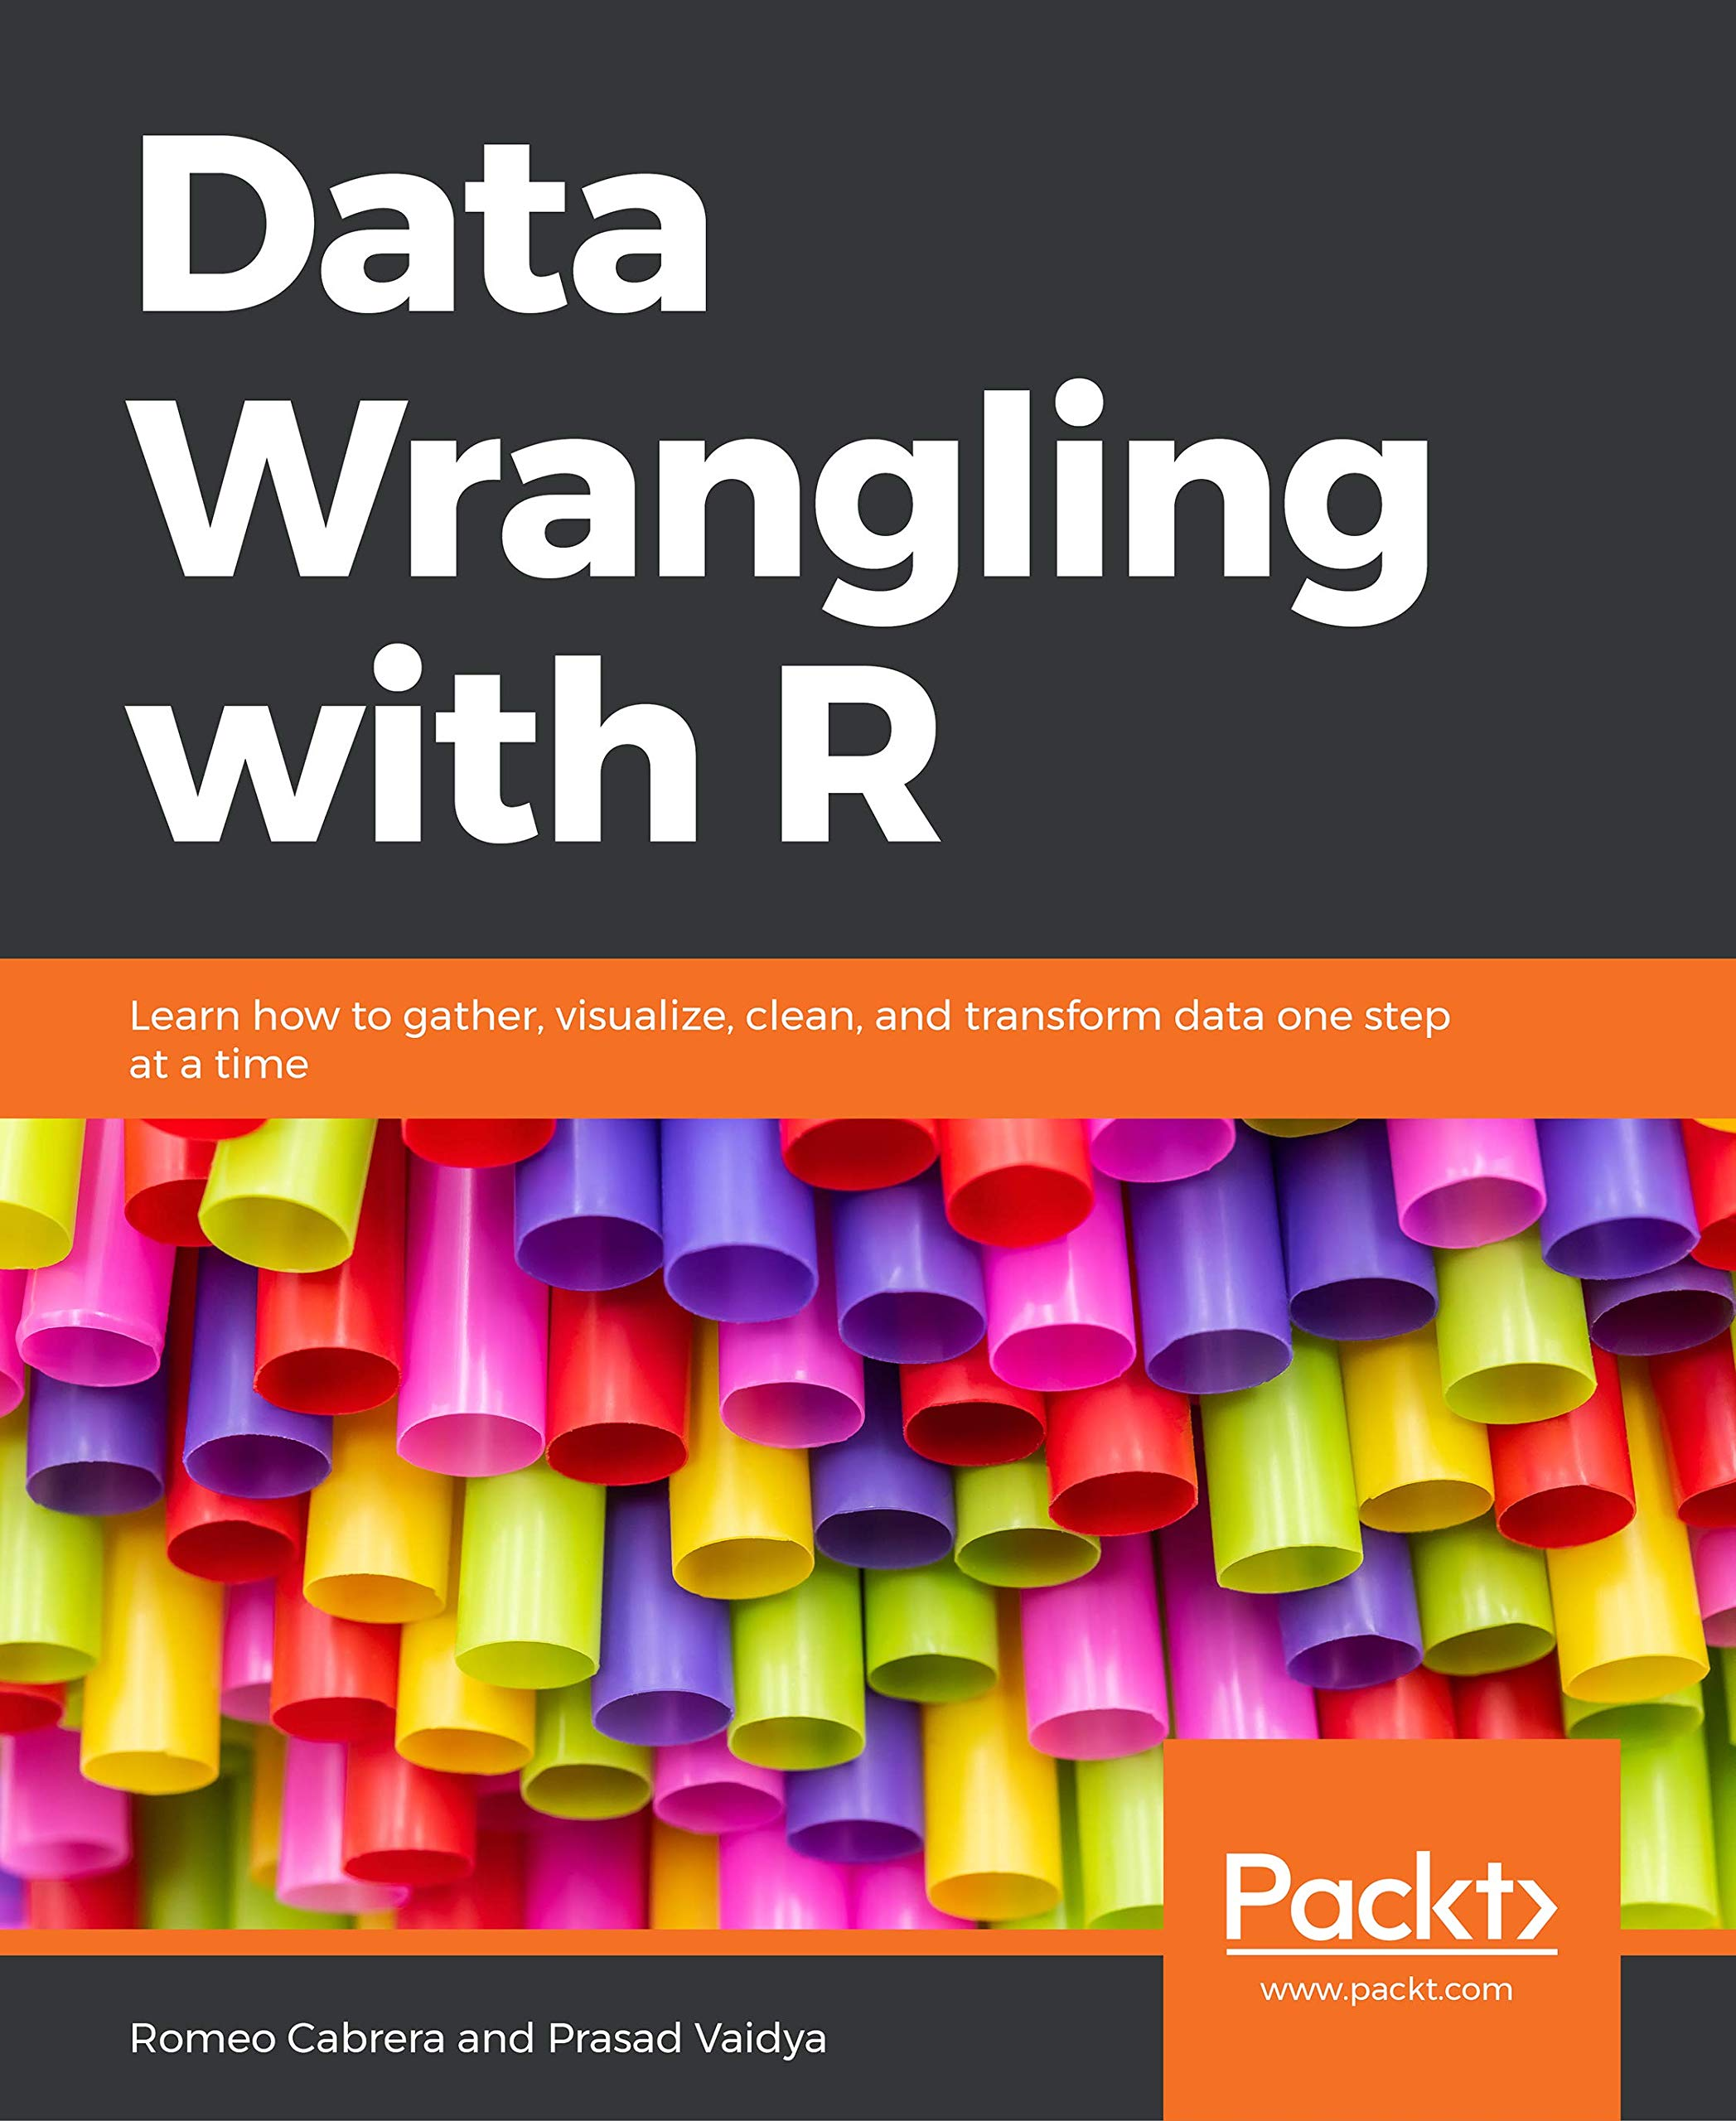 Data Wrangling with R: Learn how to gather, visualize, clean